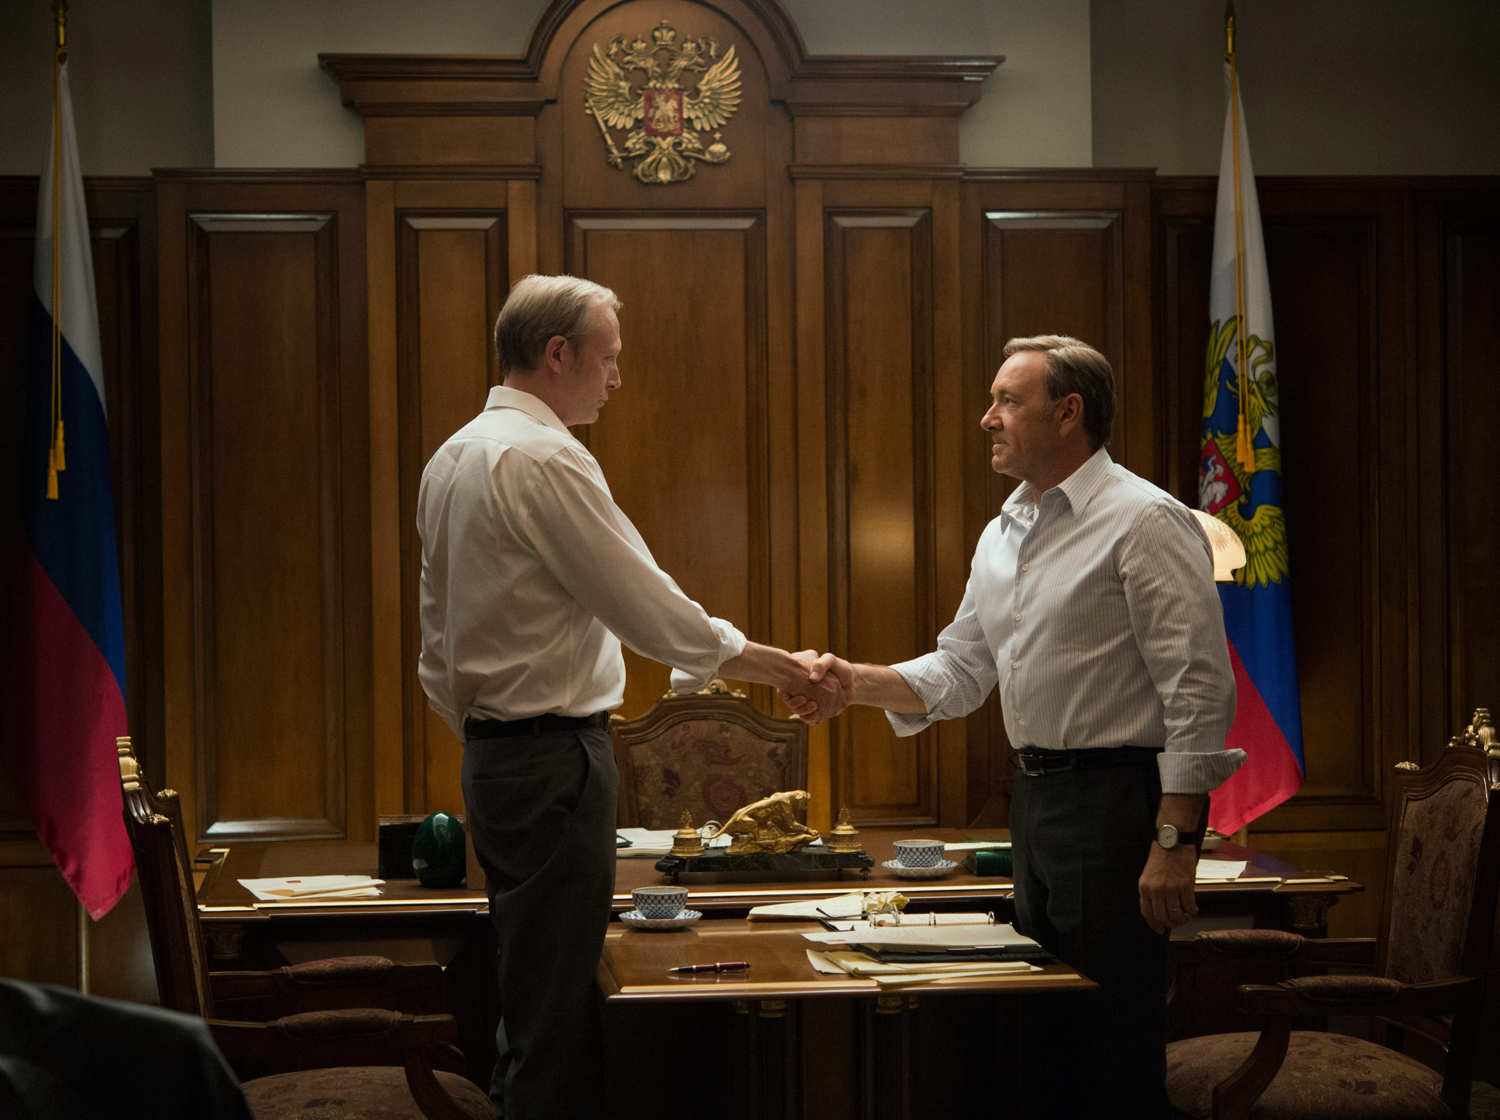 house-of-cards-s03-16.w750.h560.2x